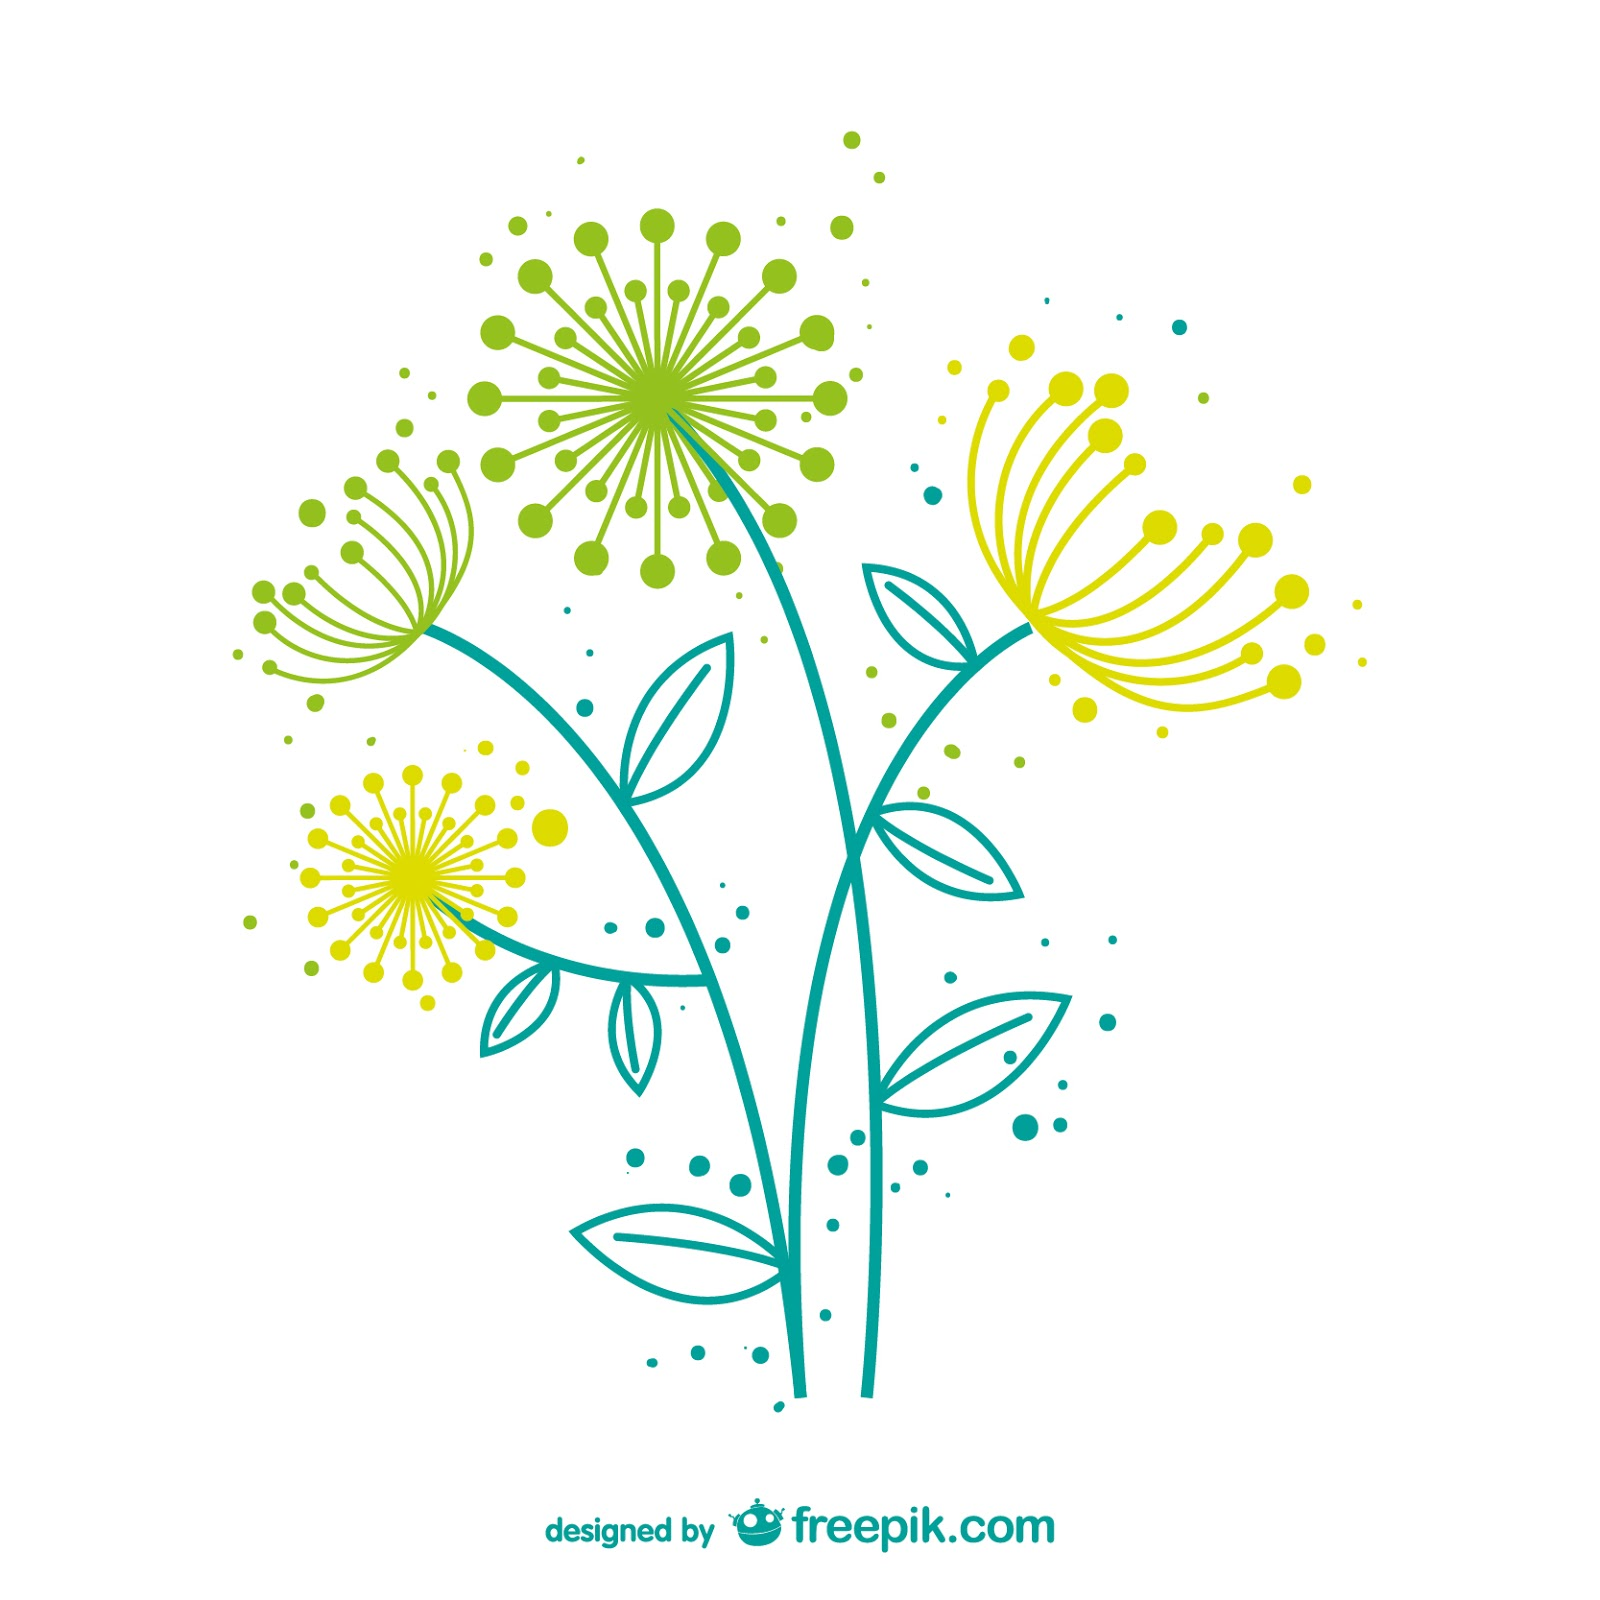 Artistic Dandelion Vector Free Download Vector CDR, AI, EPS and PNG Formats